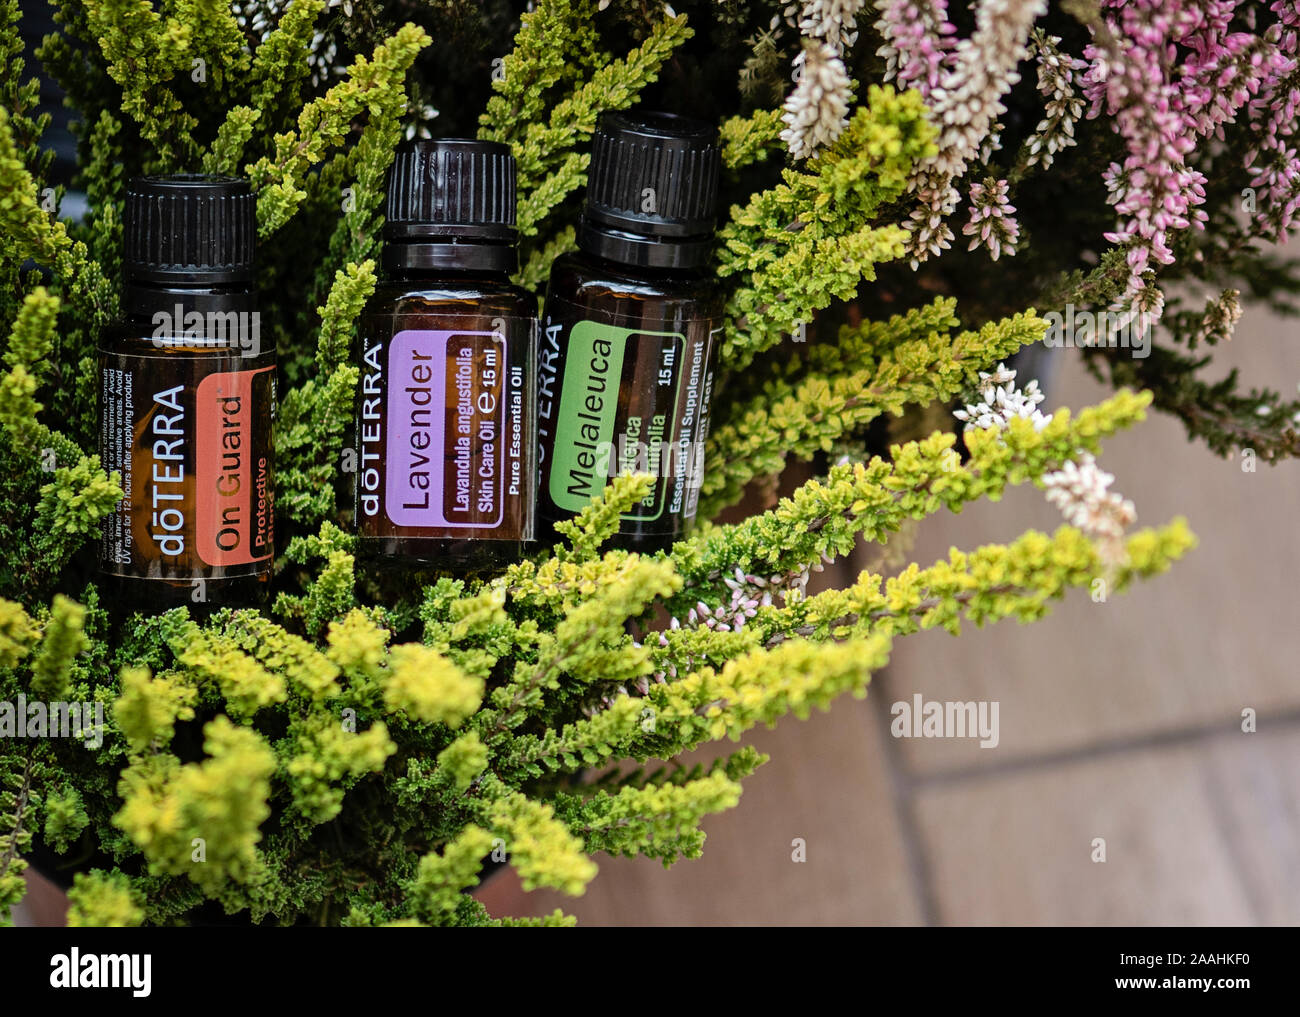 Banska Bystrica Slovakia October 6th 2019 Selective Focus On High Quality Essential Oils Doterra Brand On Guard Melaleuca And Lavender Oil Stock Photo Alamy